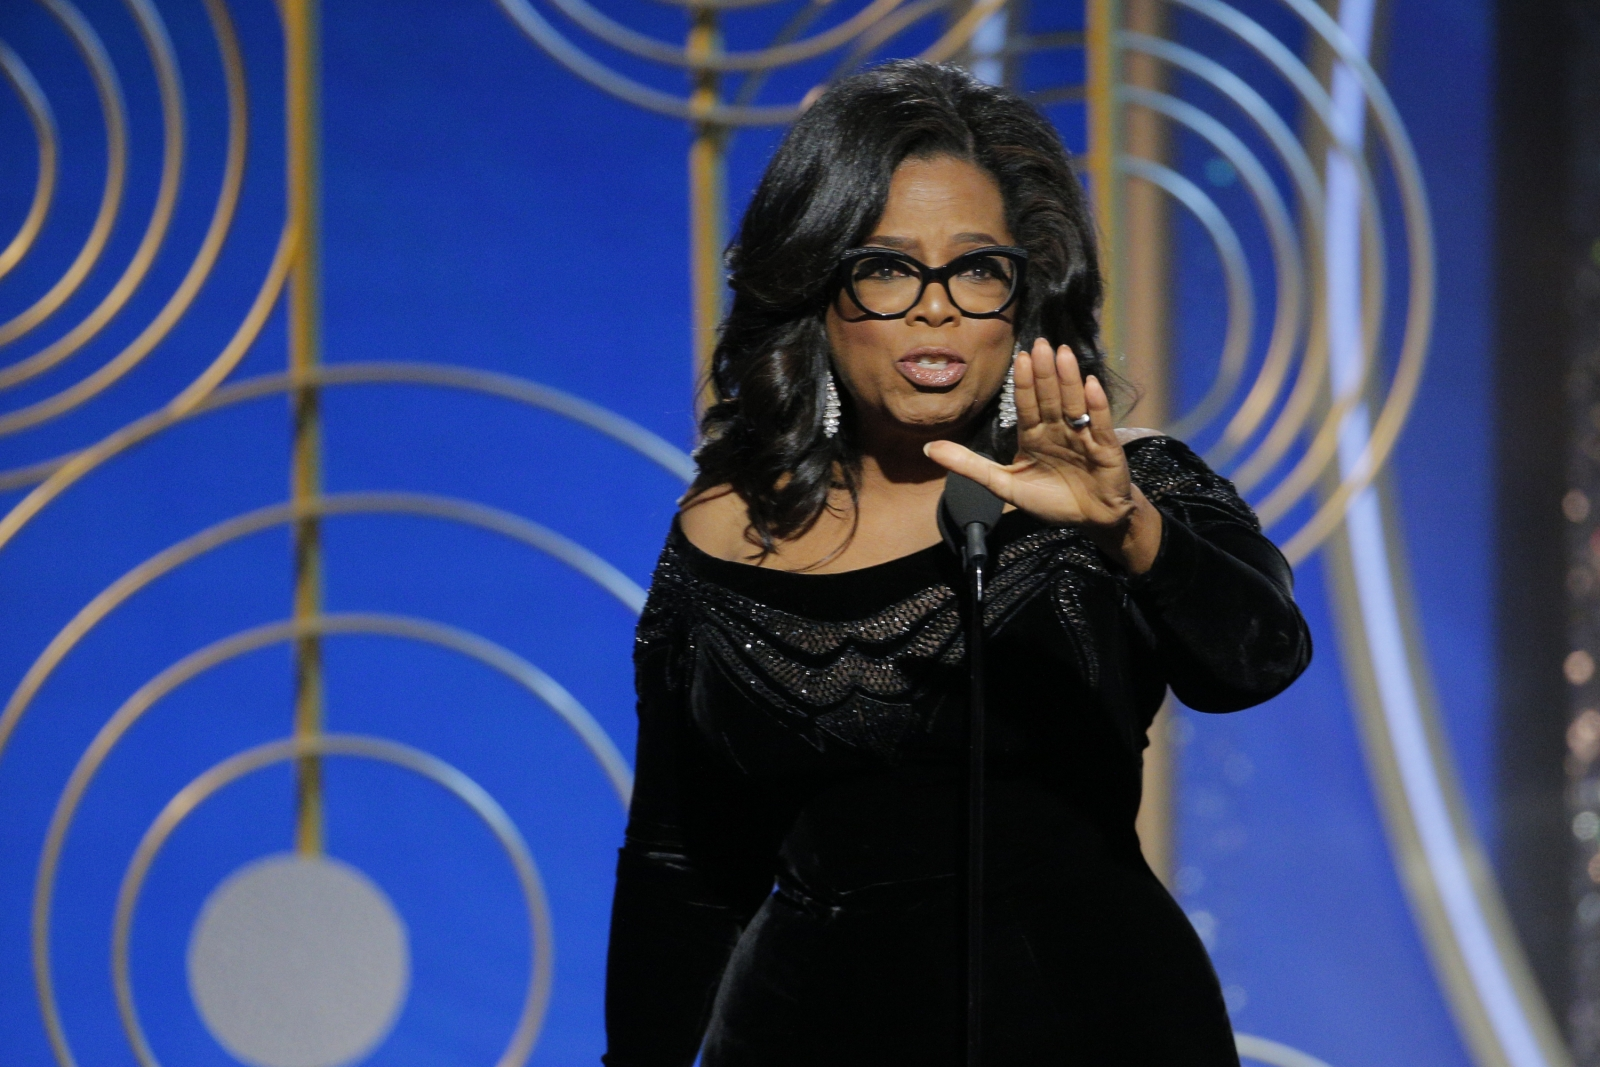 Gayle King: Oprah is 'intrigued by the idea' of a presidential run